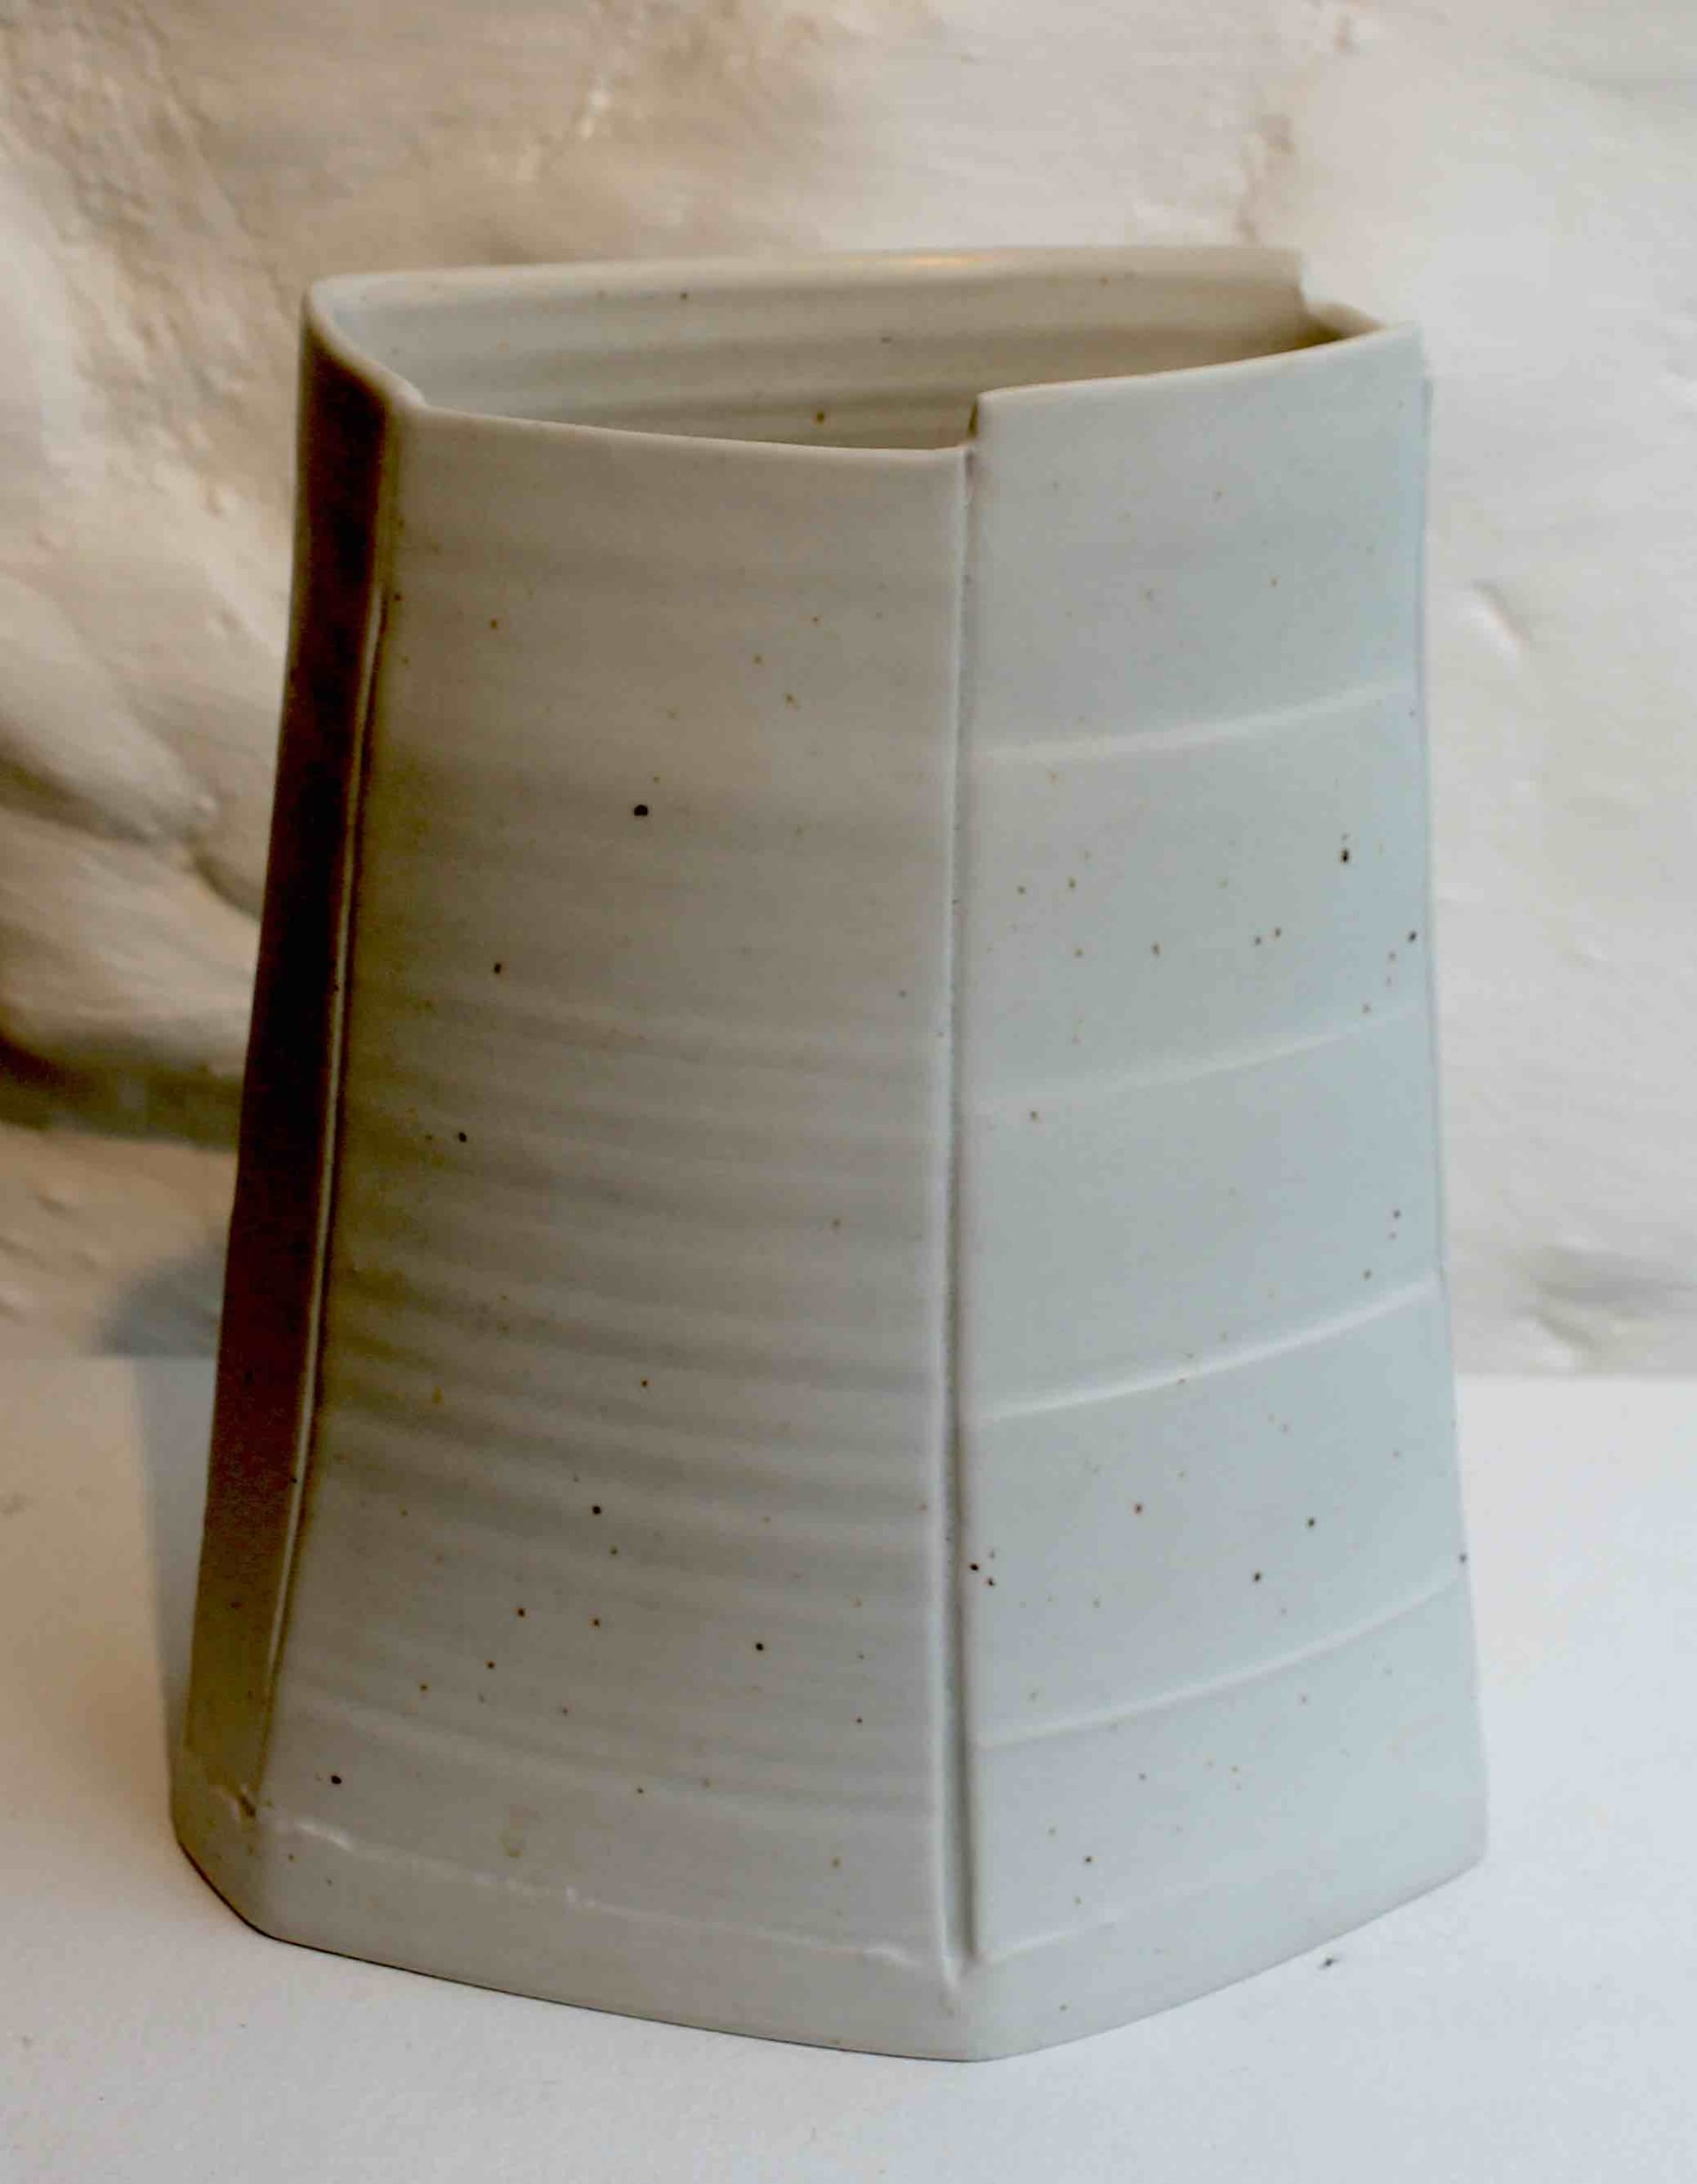 """<span class=""""link fancybox-details-link""""><a href=""""/artists/99-carina-ciscato/works/5761-carina-ciscato-tall-coloured-vase-2018/"""">View Detail Page</a></span><div class=""""artist""""><strong>Carina Ciscato</strong></div> b. 1970 <div class=""""title""""><em>Tall Coloured Vase</em>, 2018</div> <div class=""""signed_and_dated"""">porcelain</div> <div class=""""medium"""">porcelain</div> <div class=""""dimensions"""">18 x 13 cm<br /> 7 1/8 x 5 1/8 inches</div><div class=""""price"""">£750.00</div><div class=""""copyright_line"""">OwnArt: £ 75 x 10 Months, 0% APR</div>"""